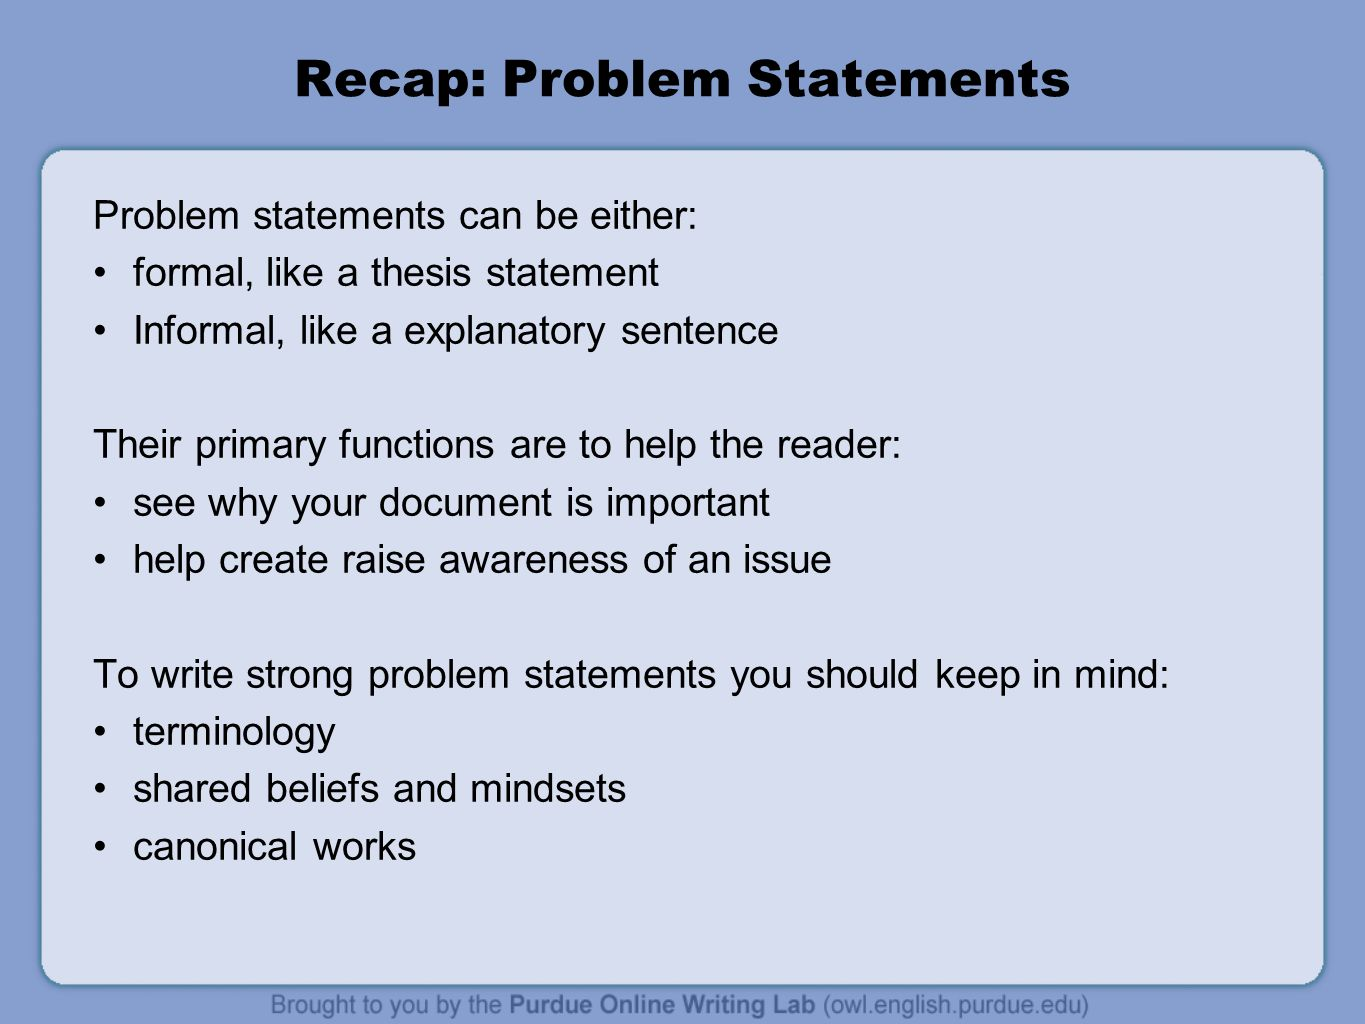 Recap: Problem Statements Problem statements can be either: formal, like a thesis statement Informal, like a explanatory sentence Their primary functions are to help the reader: see why your document is important help create raise awareness of an issue To write strong problem statements you should keep in mind: terminology shared beliefs and mindsets canonical works